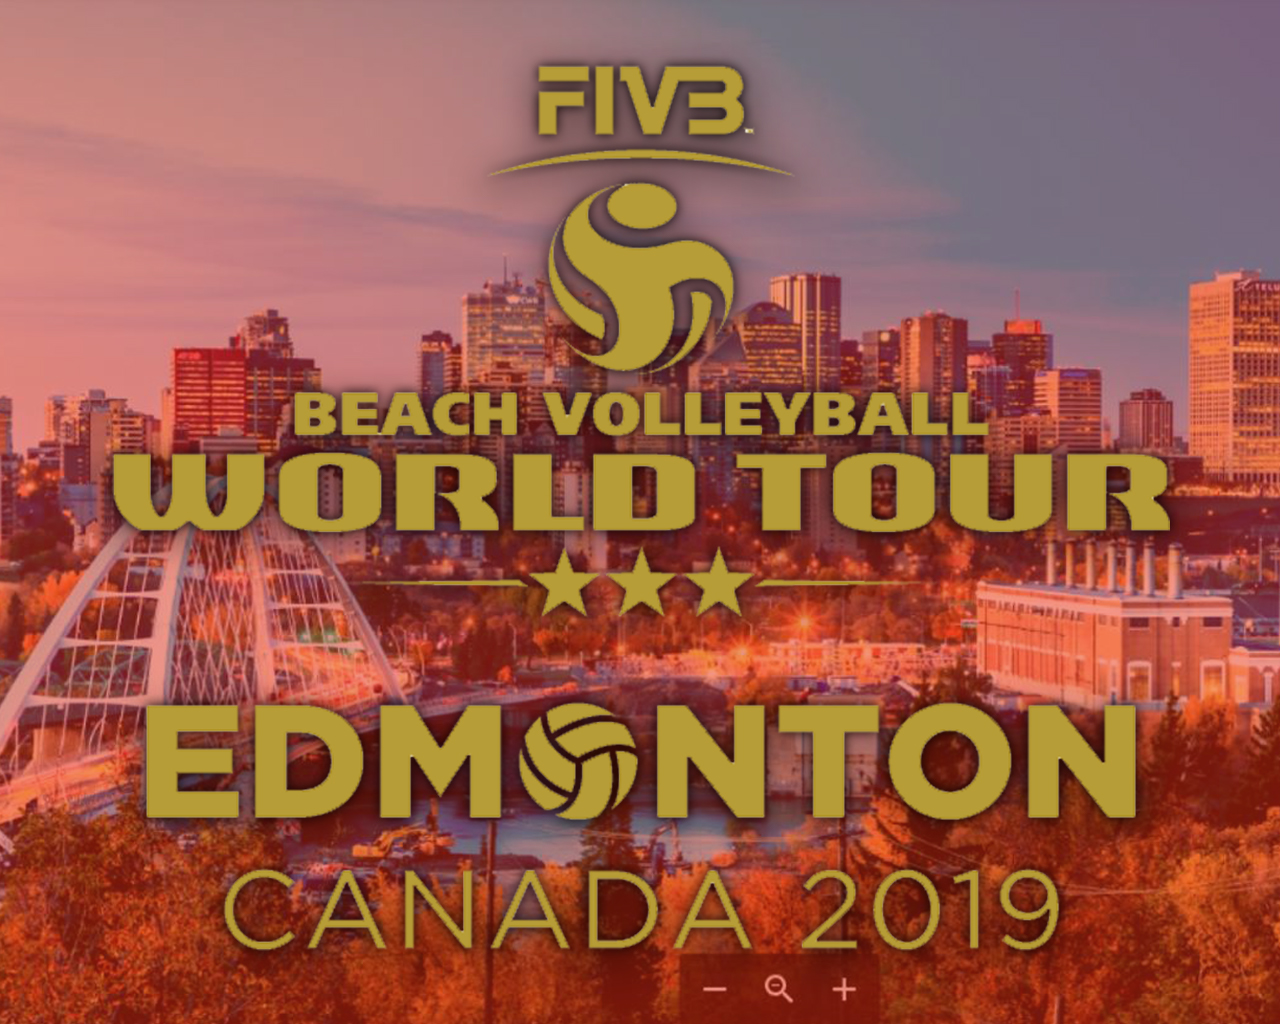 Click here to visit our Edmonton 2019 Homepage for more information!